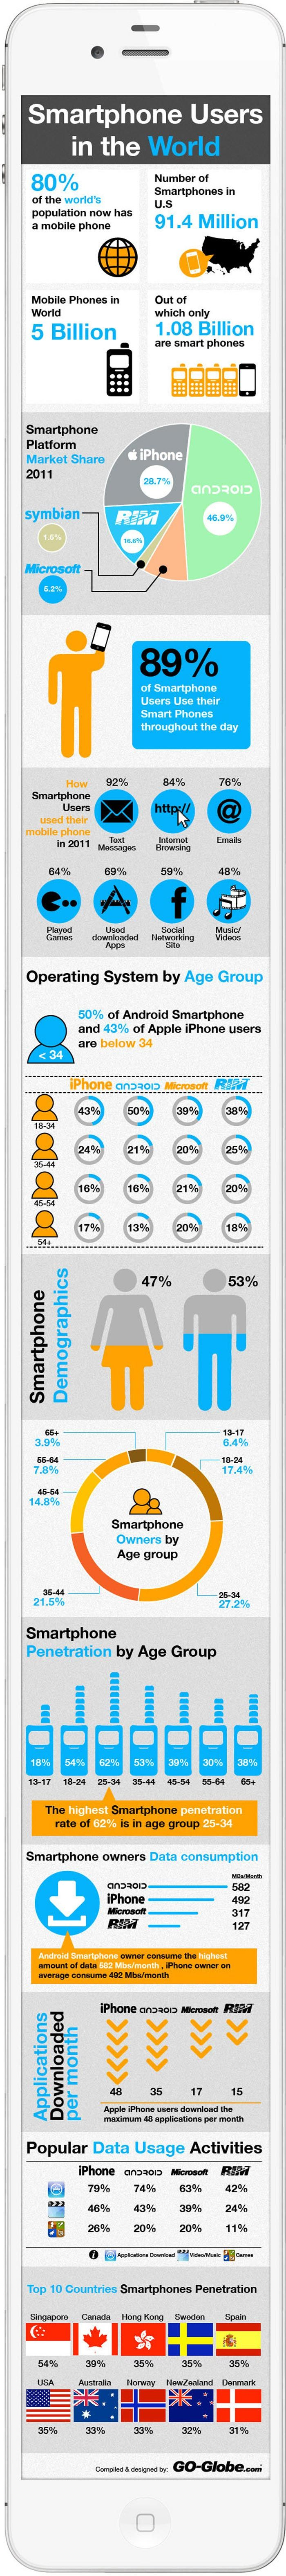 If you aren't on a smartphone, you are seriously behind times!  Smartphone Usage Statistics 2012 [Infographic]